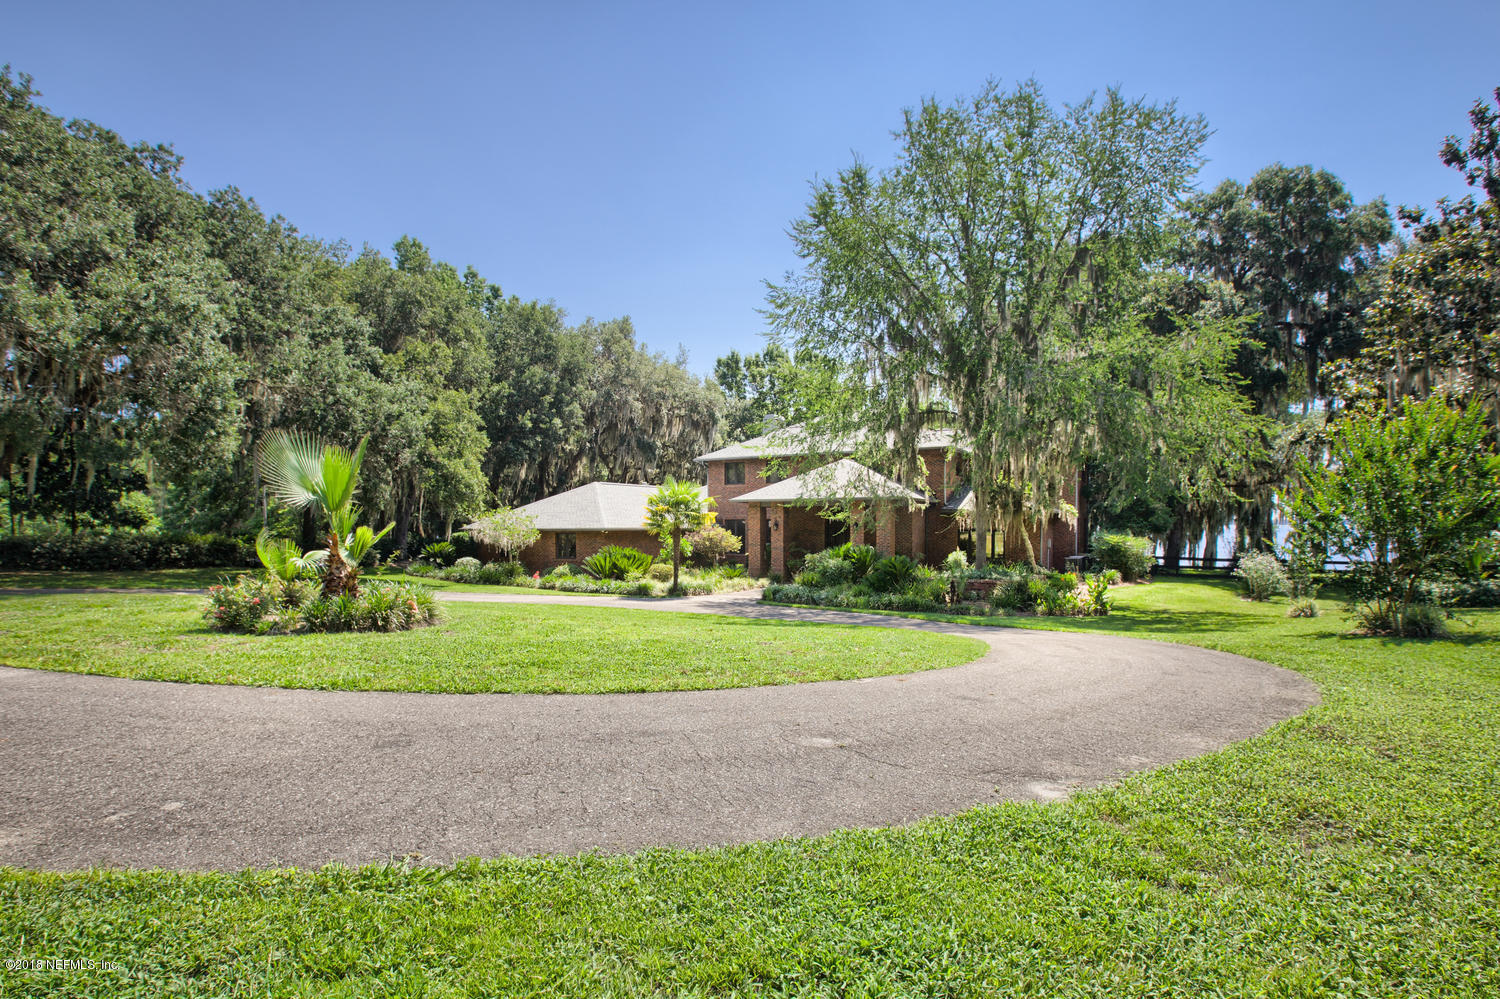 10407 COUNTY RD 1469, EARLTON, FLORIDA 32631, 5 Bedrooms Bedrooms, ,4 BathroomsBathrooms,Residential - single family,For sale,COUNTY RD 1469,939869